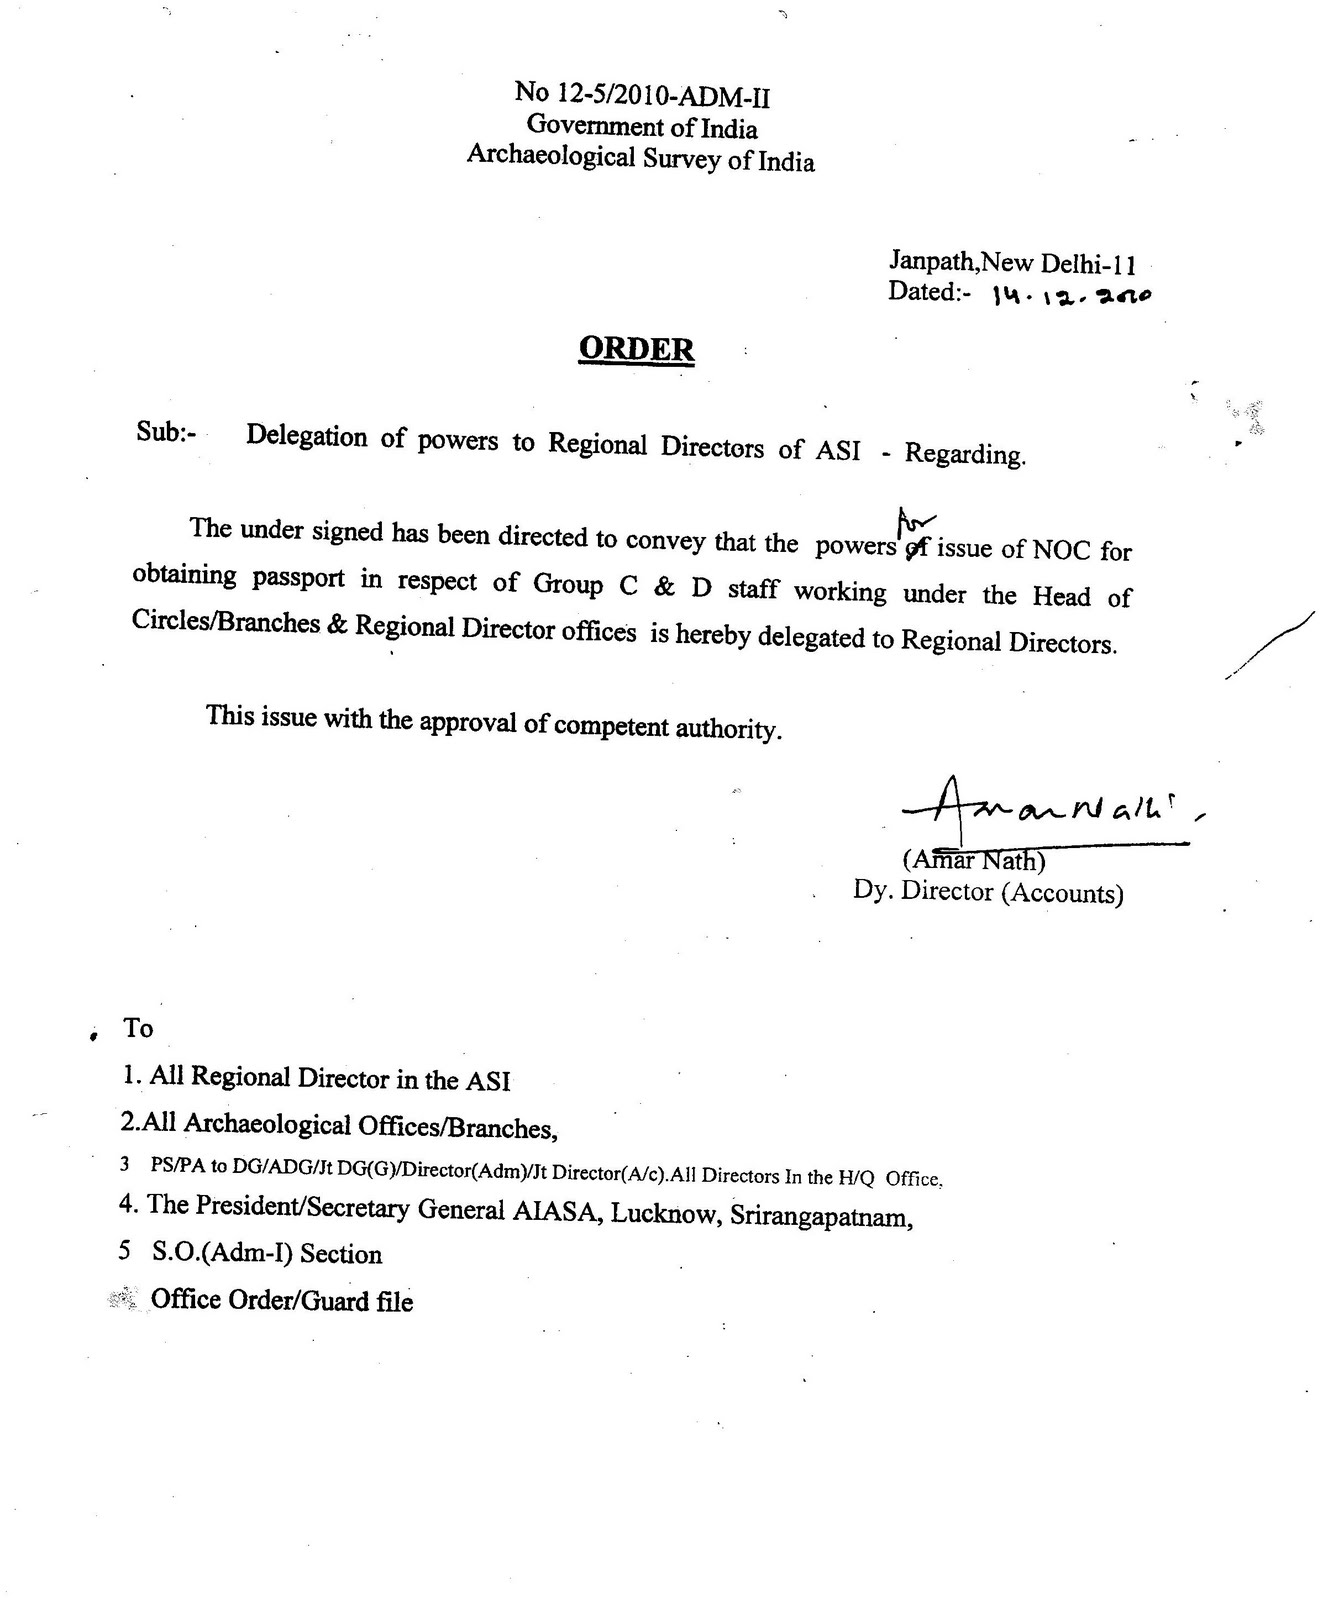 All india archaeological service association regd delegation of all india archaeological service association regd delegation of powers to issue noc to group c and d staff spiritdancerdesigns